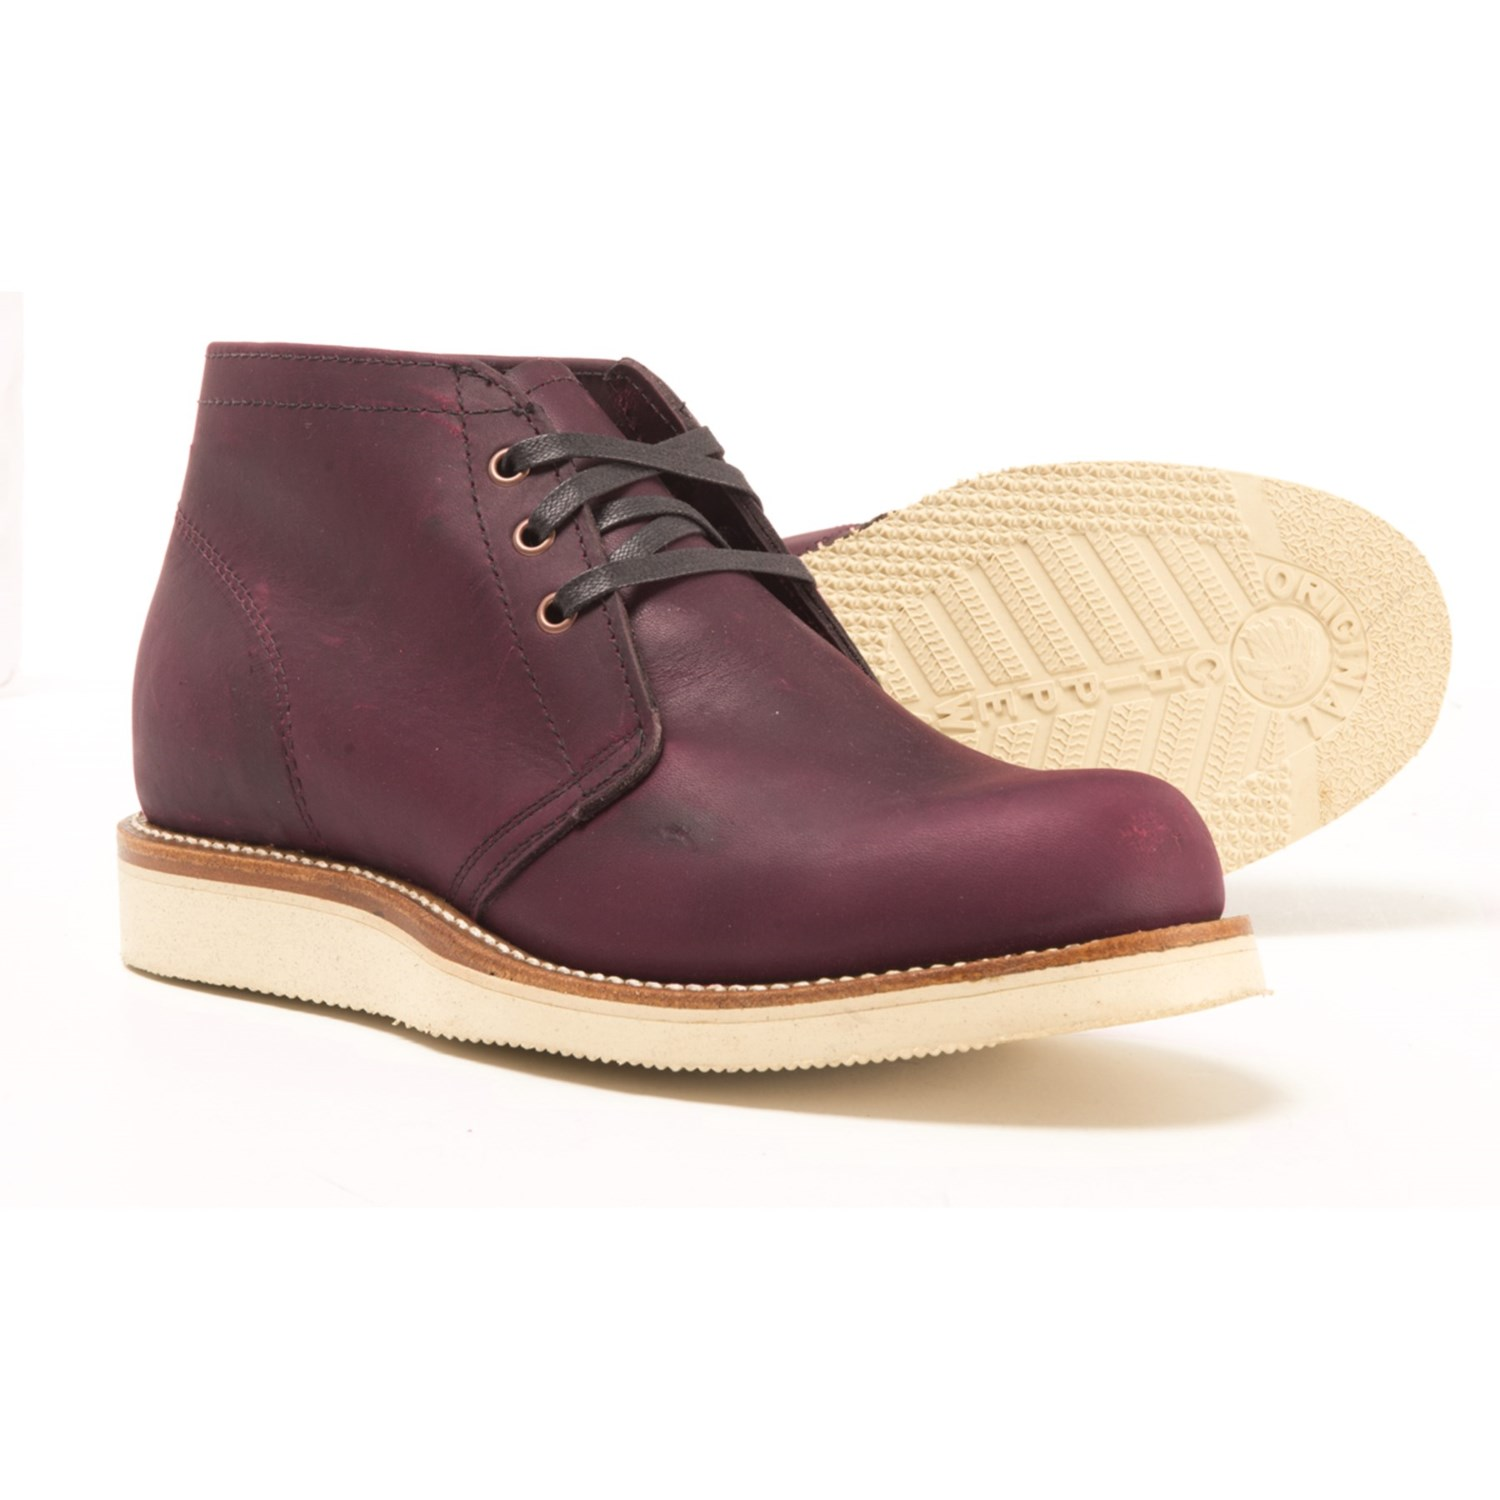 53fc5bd0 Chippewa 1955 Original Modern Suburban Chukka Boots - Leather, Factory 2nds  (For Men)